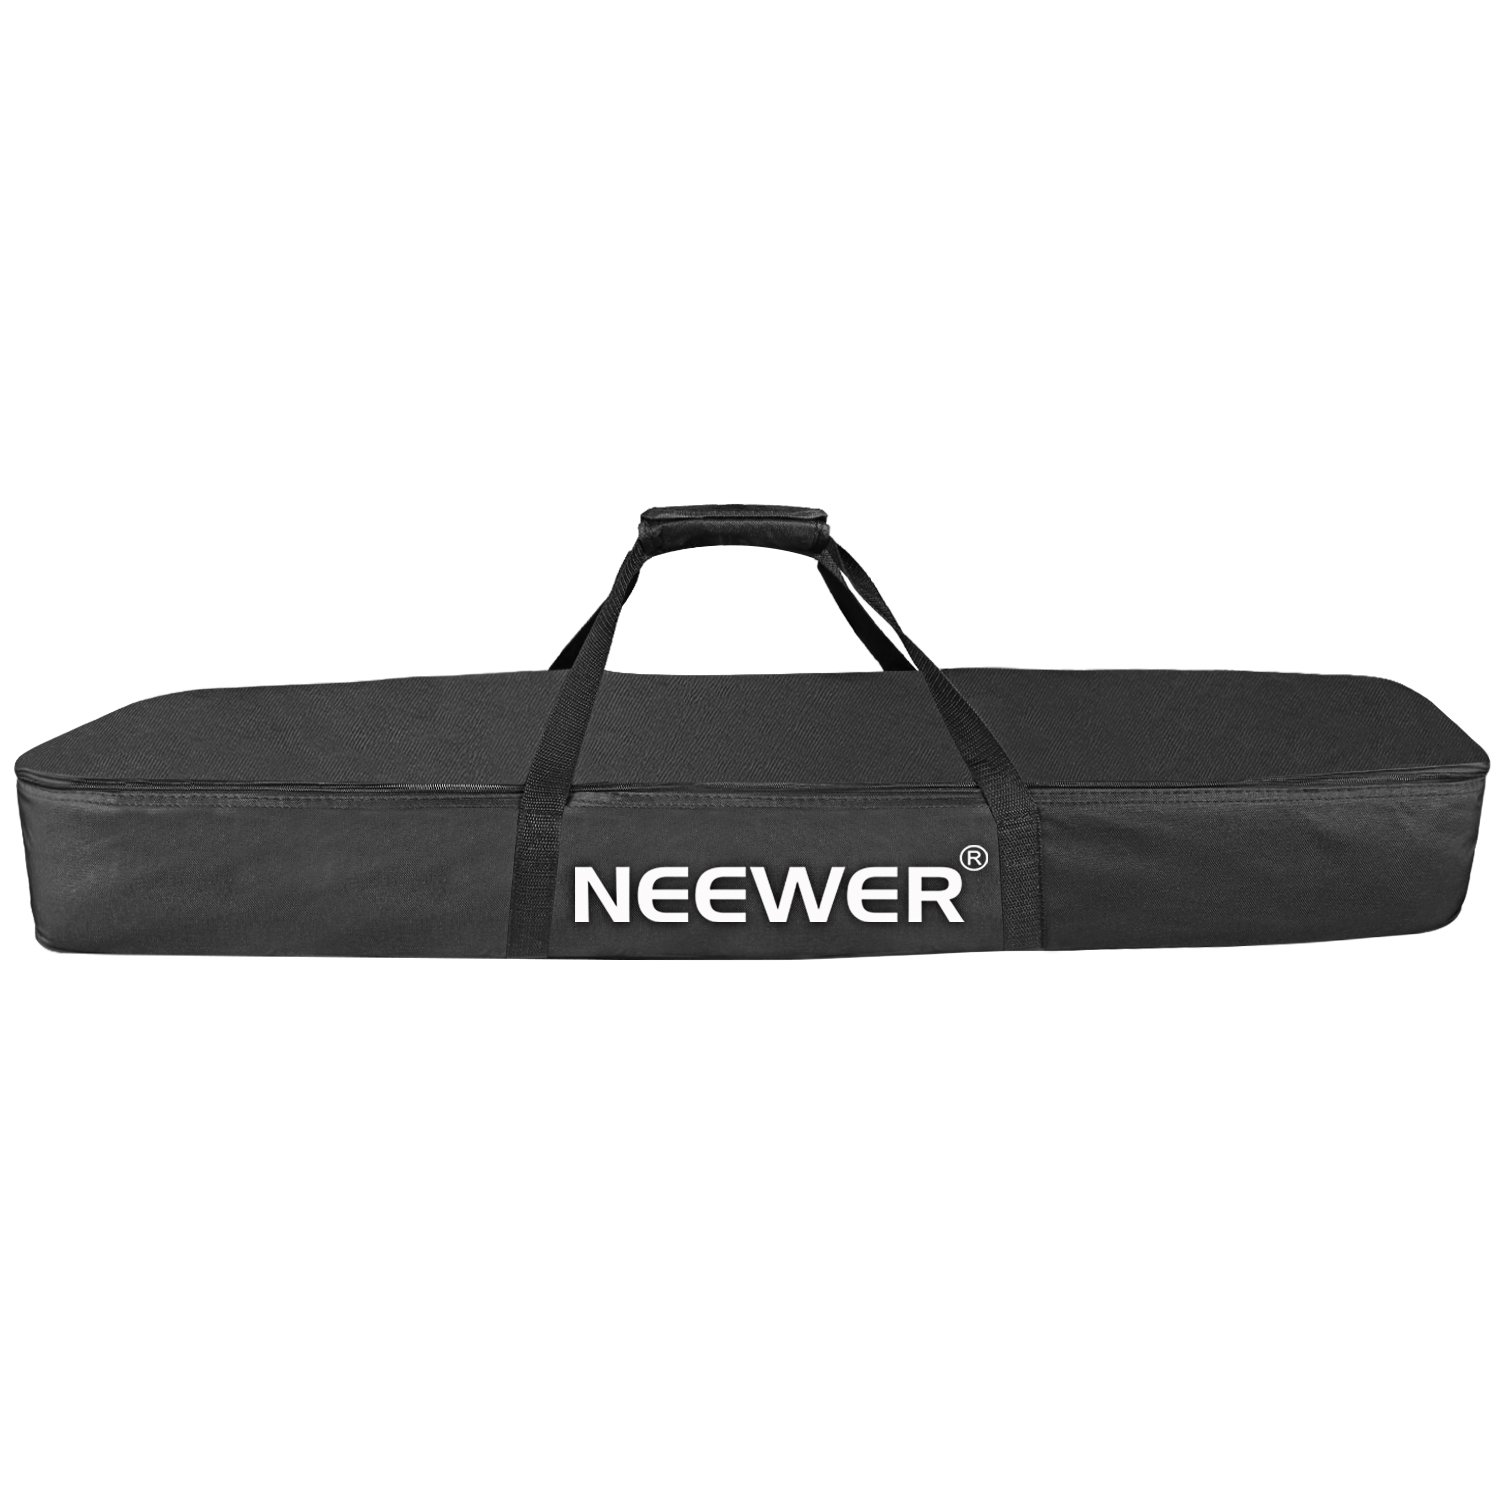 Neewer Durable Speaker Stand Case Bag with Dual Compartment, Two Quick-grab Handle Straps, 43 inches/ 110 centimeters, Black (NW-009)